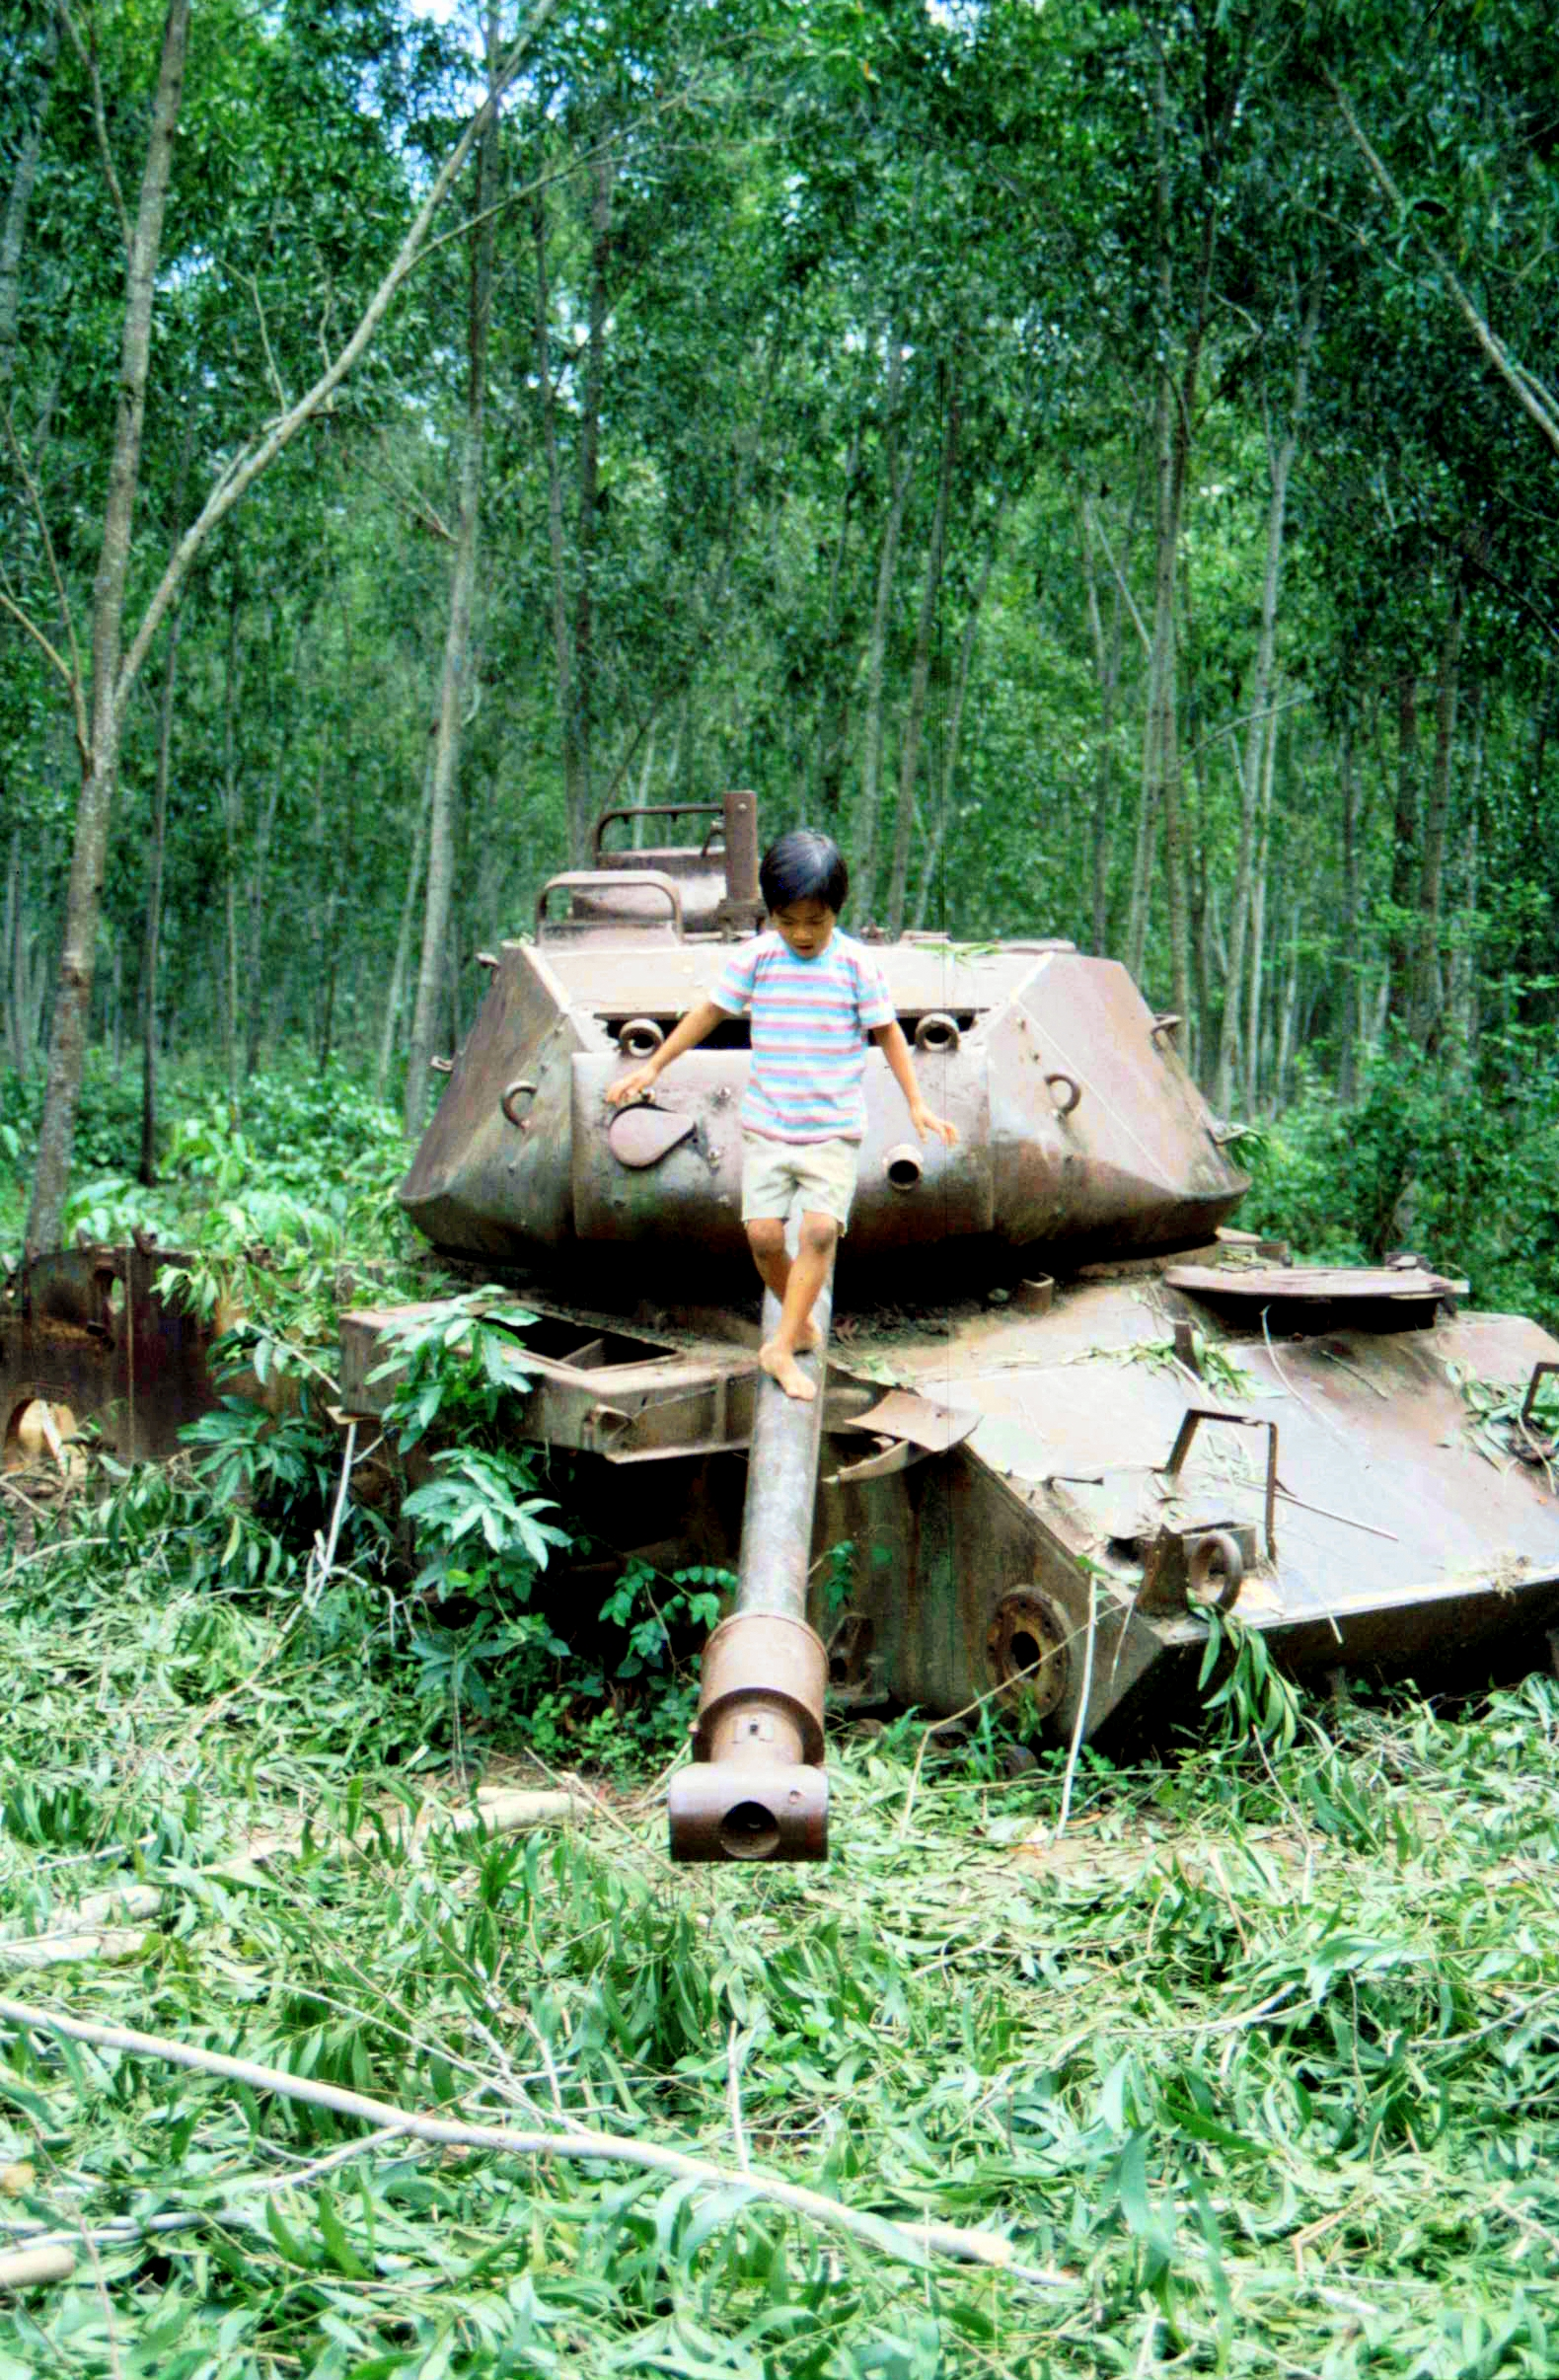 A child plays on an abandoned tank outside Phnom Penh, Cambodia in 1991.